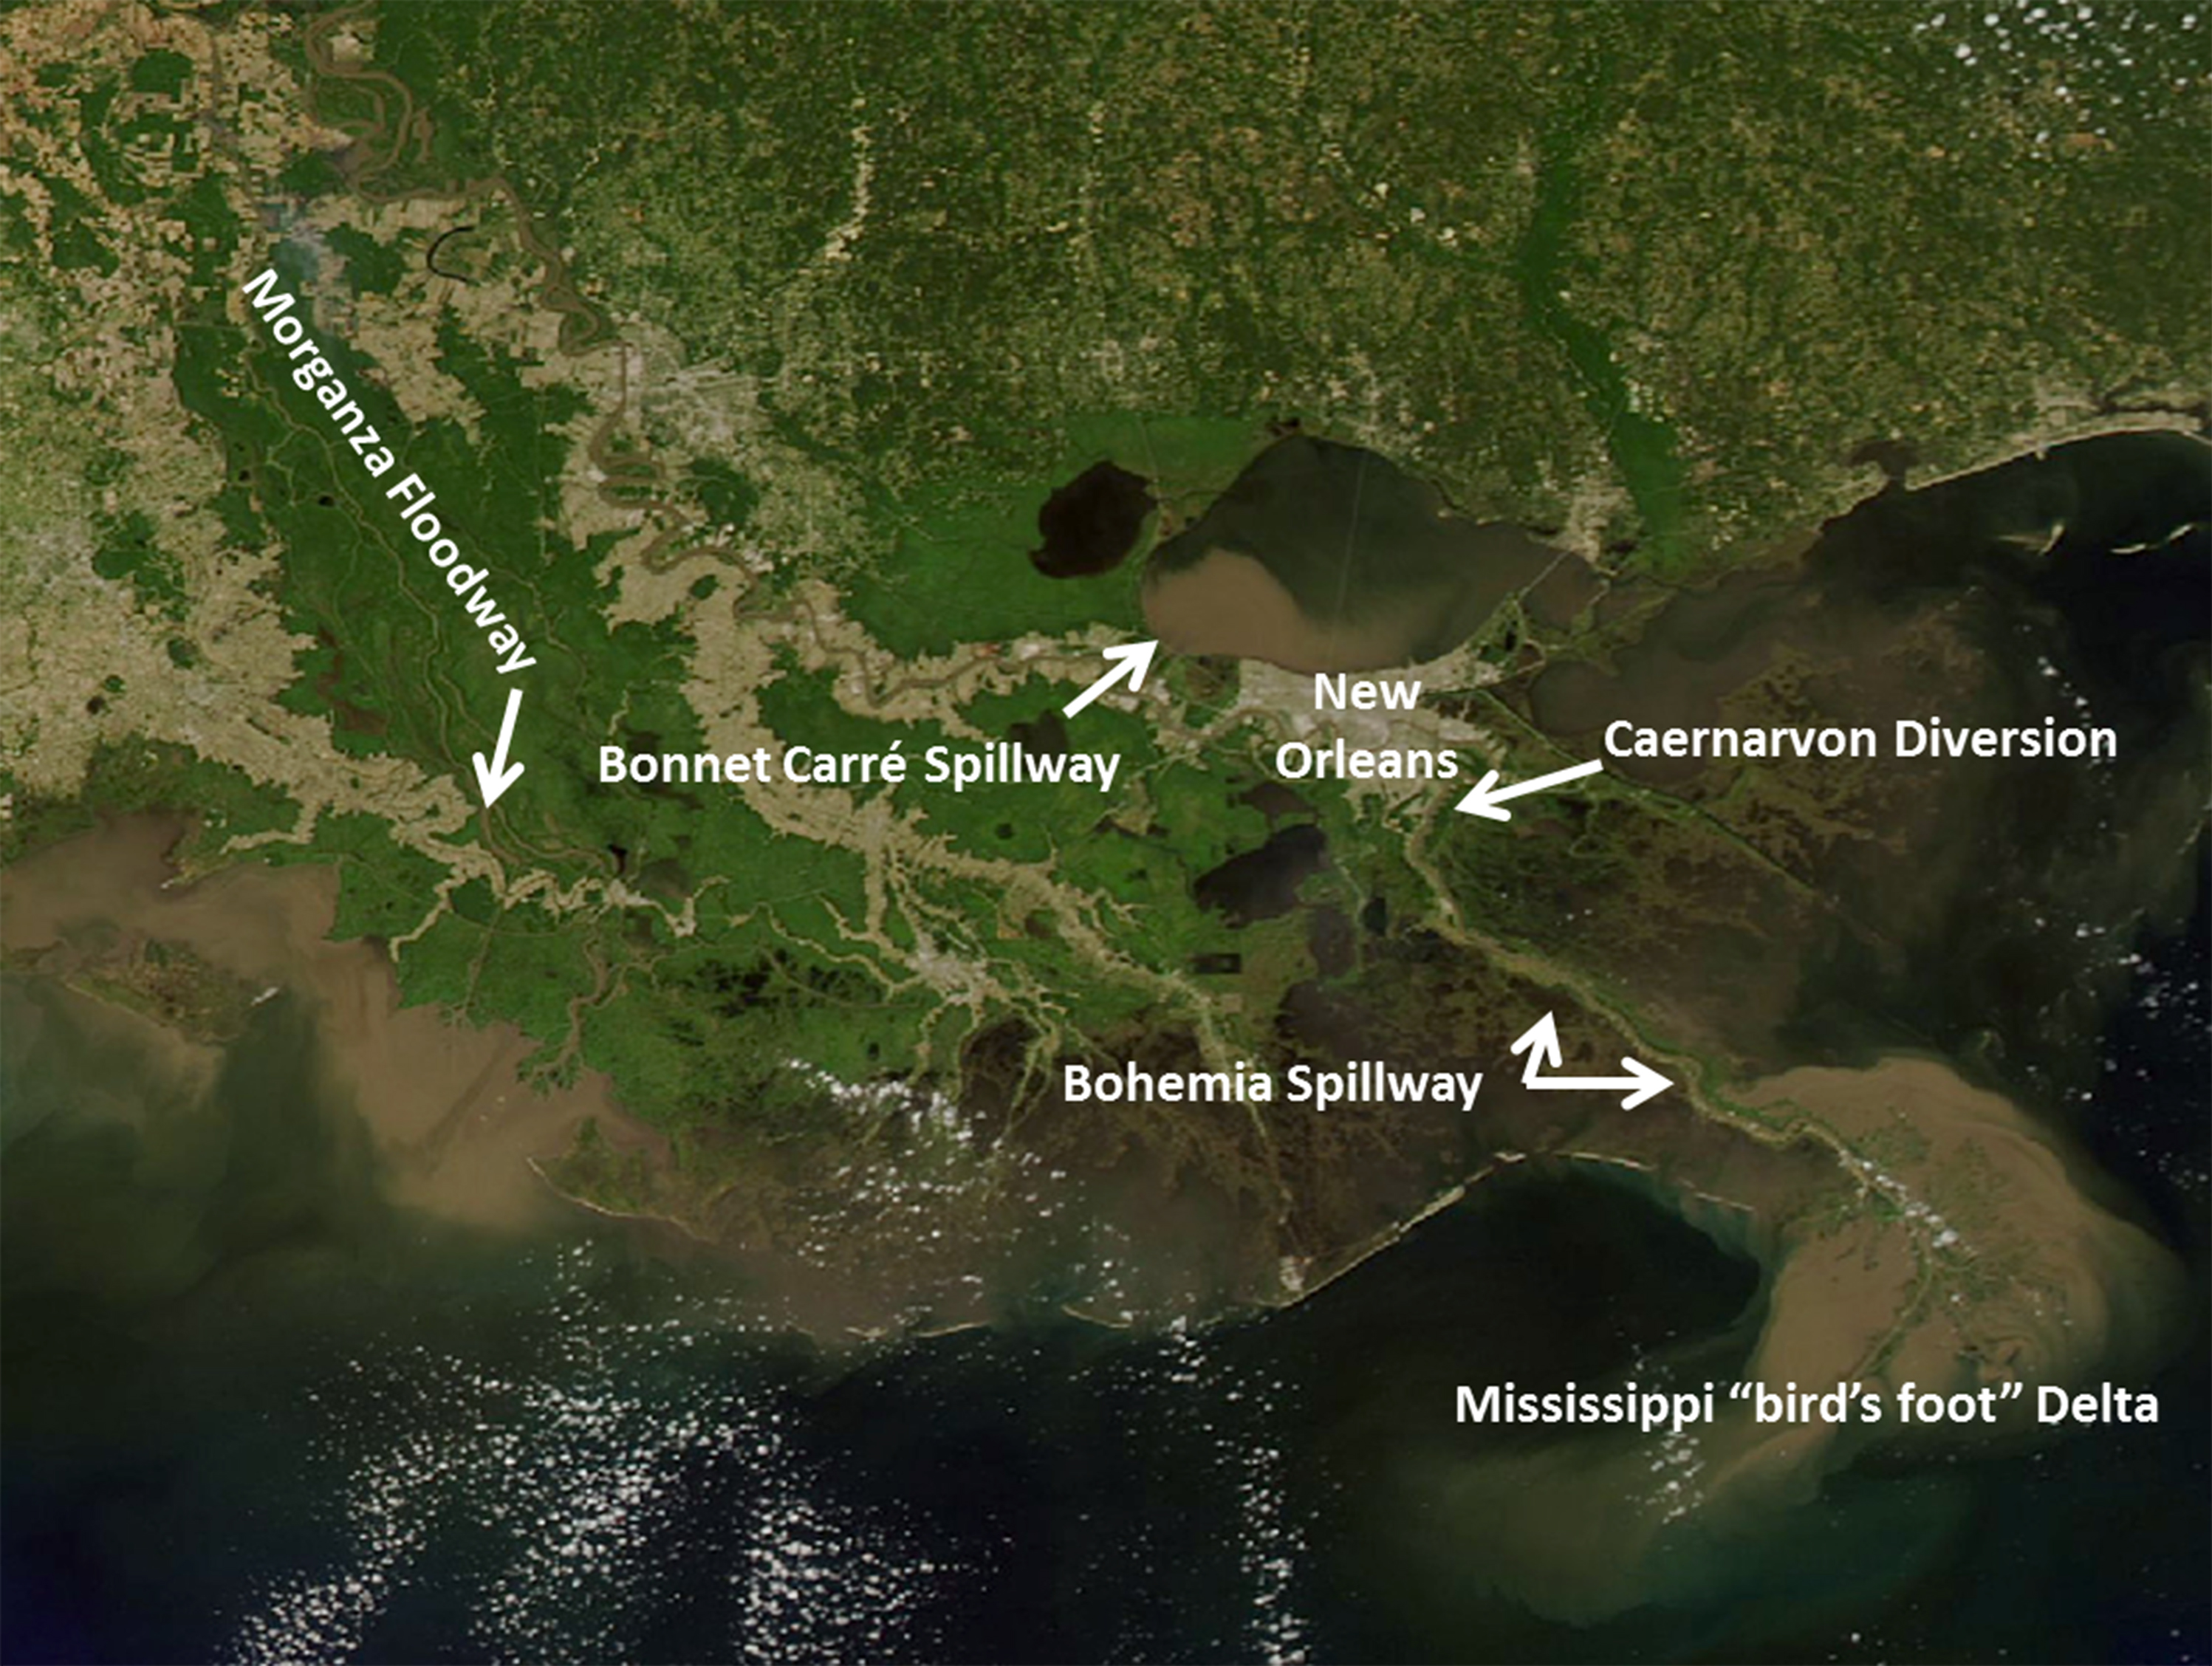 Location of the Caernarvon Diversion and Bohemia Spillway in relation to New Orleans and other river outlets.